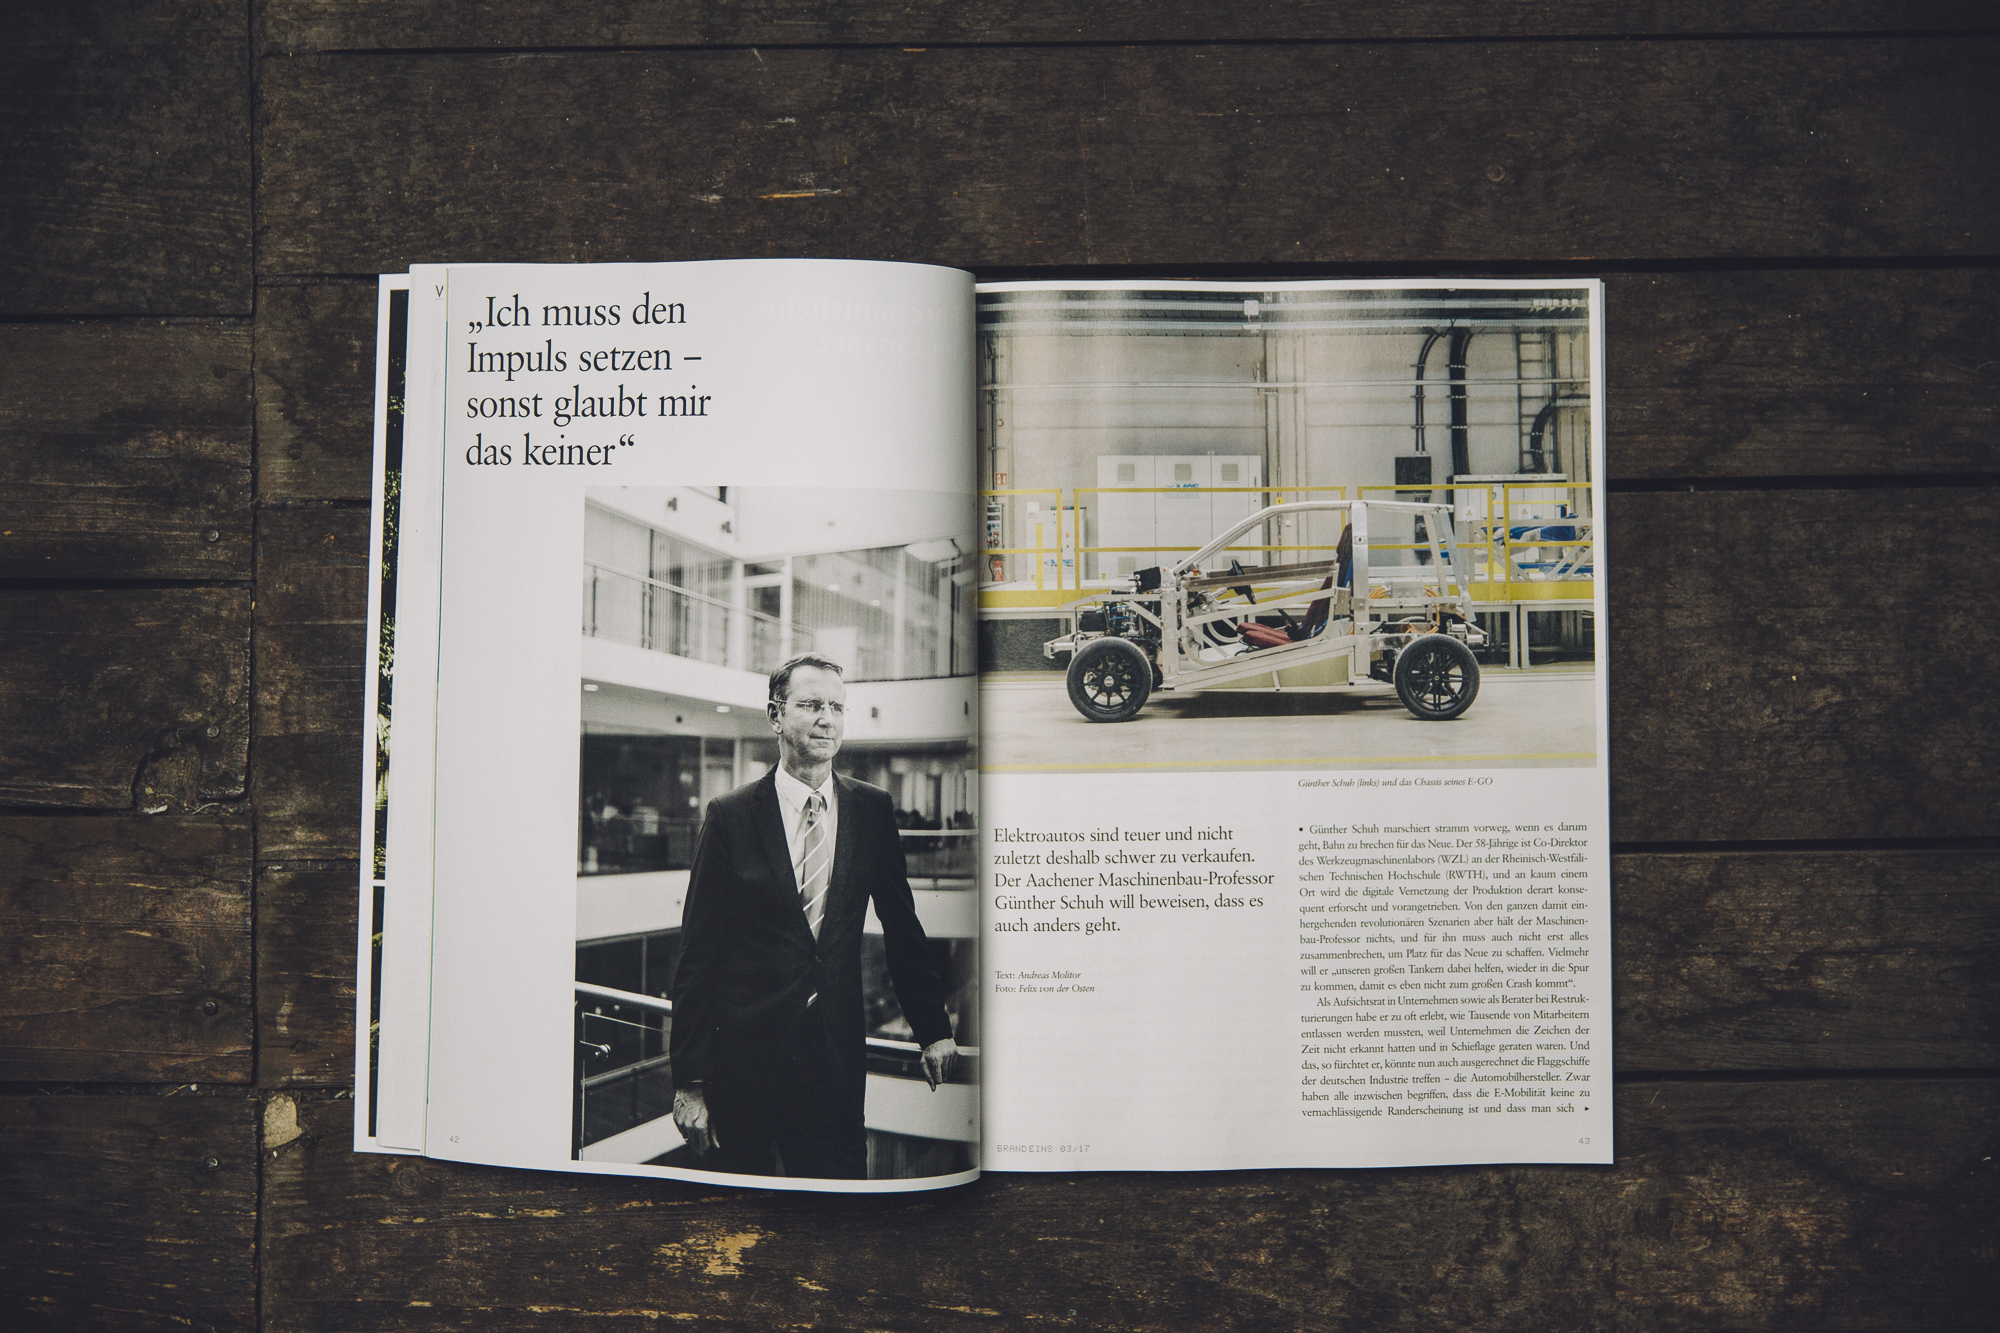 """The first spread of the story. """"I have to set the impulse – otherwise no one believes me"""" - Prof. Dr. Günther Schuh, Univ.-Prof. Dr.-Ing. Dipl.-Wirt. Ing"""